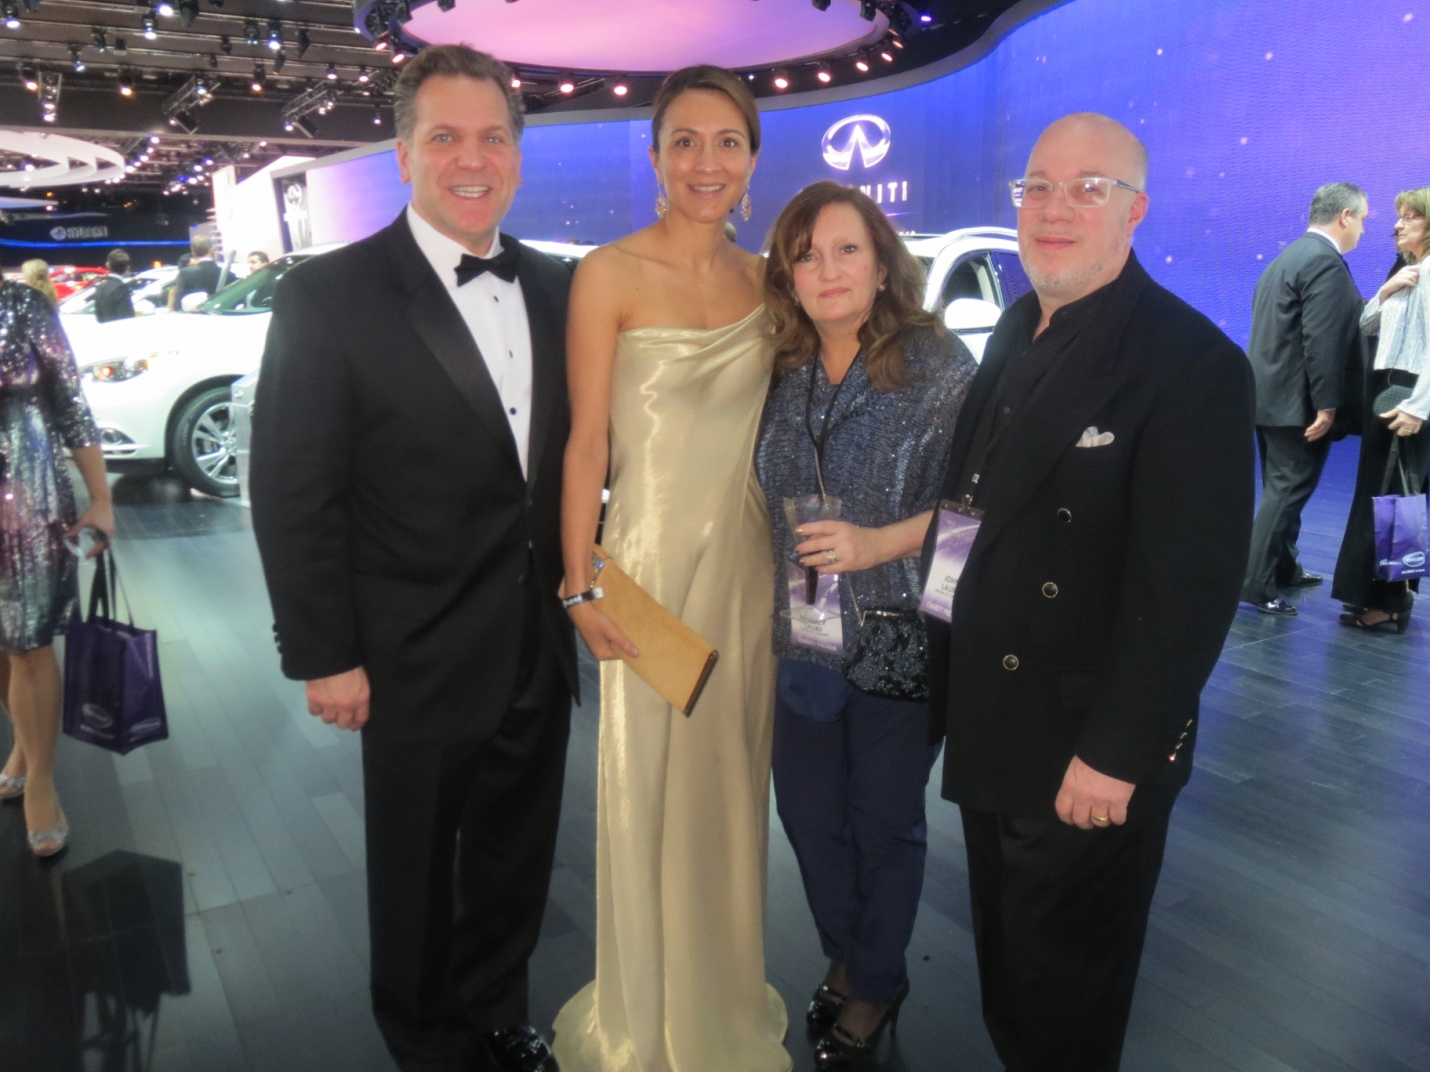 North American Auto Group >> Human Capital Partners & LIASE Group Attend the 2014 Detroit Auto Show - HCP-China Chinese